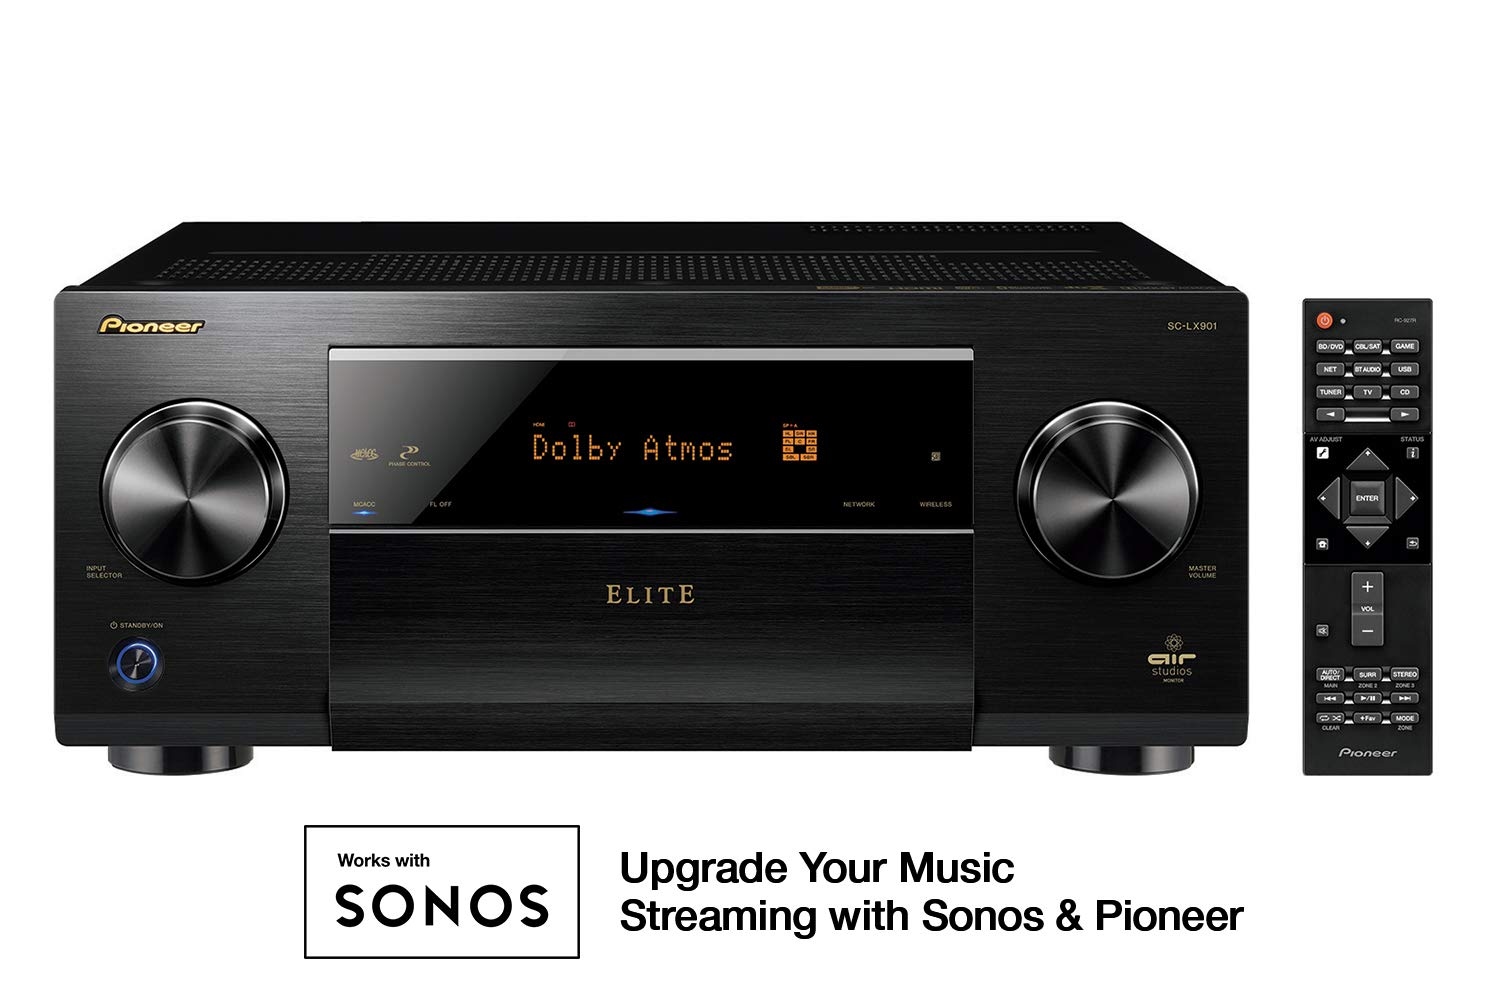 Download Drivers: Pioneer SC-LX78-K A/V Receiver